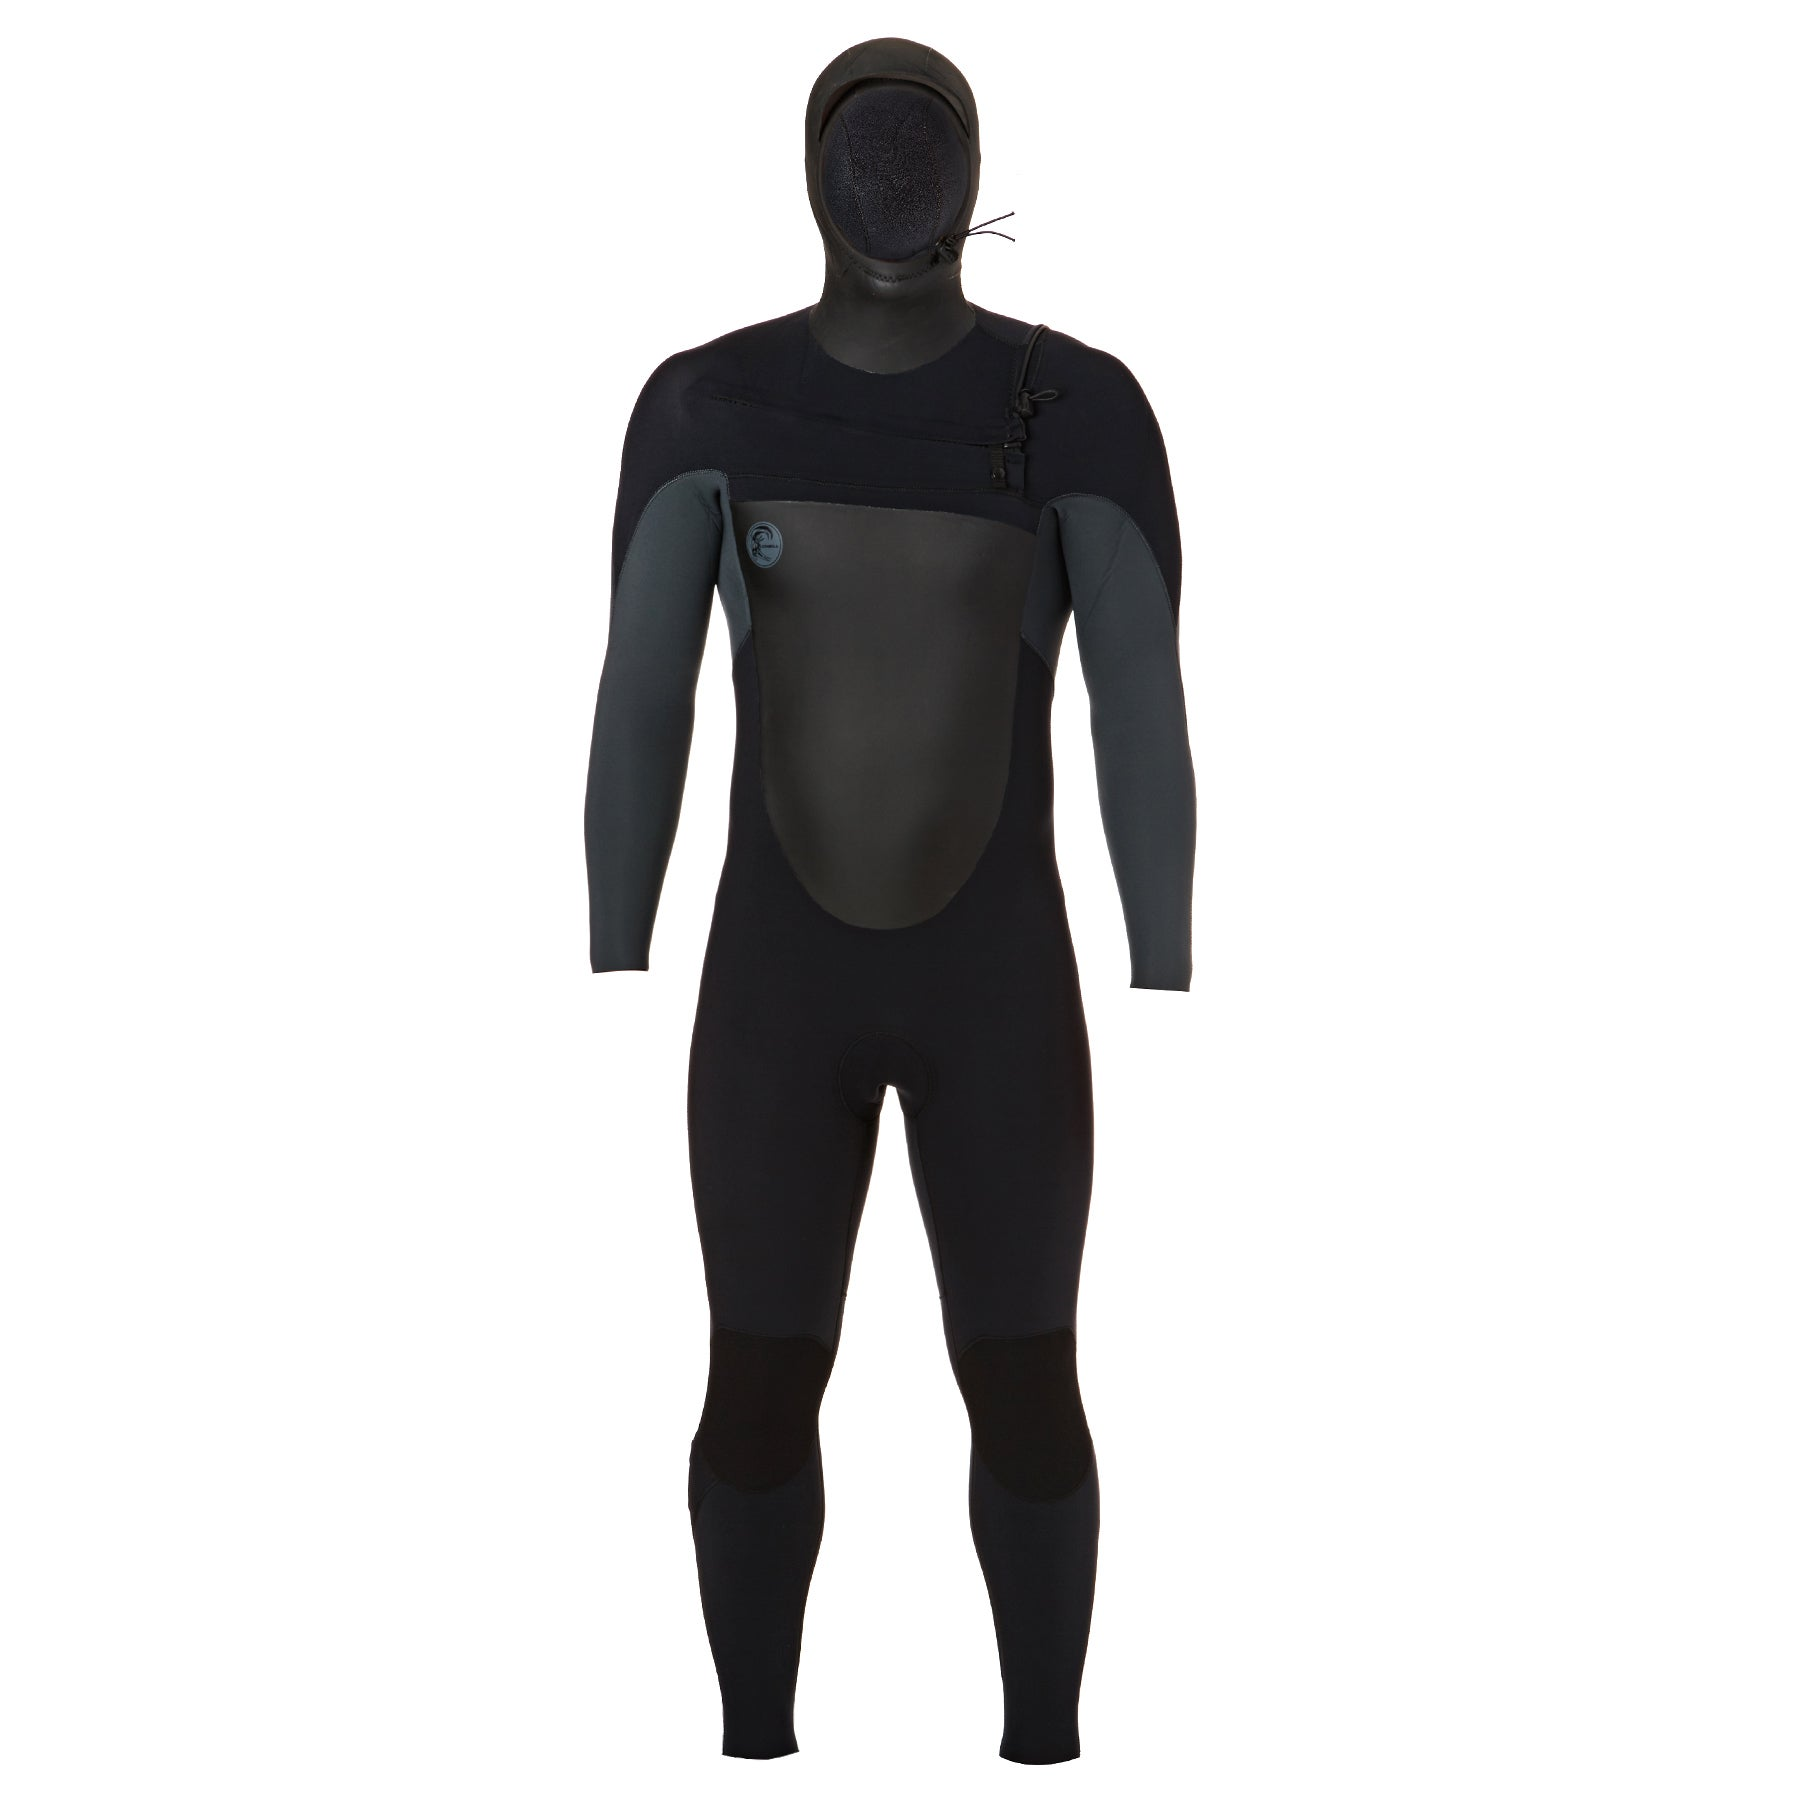 O Neill O'riginal 6/5/4mm 2018 Chest Zip Hooded Wetsuit - Black Graphite